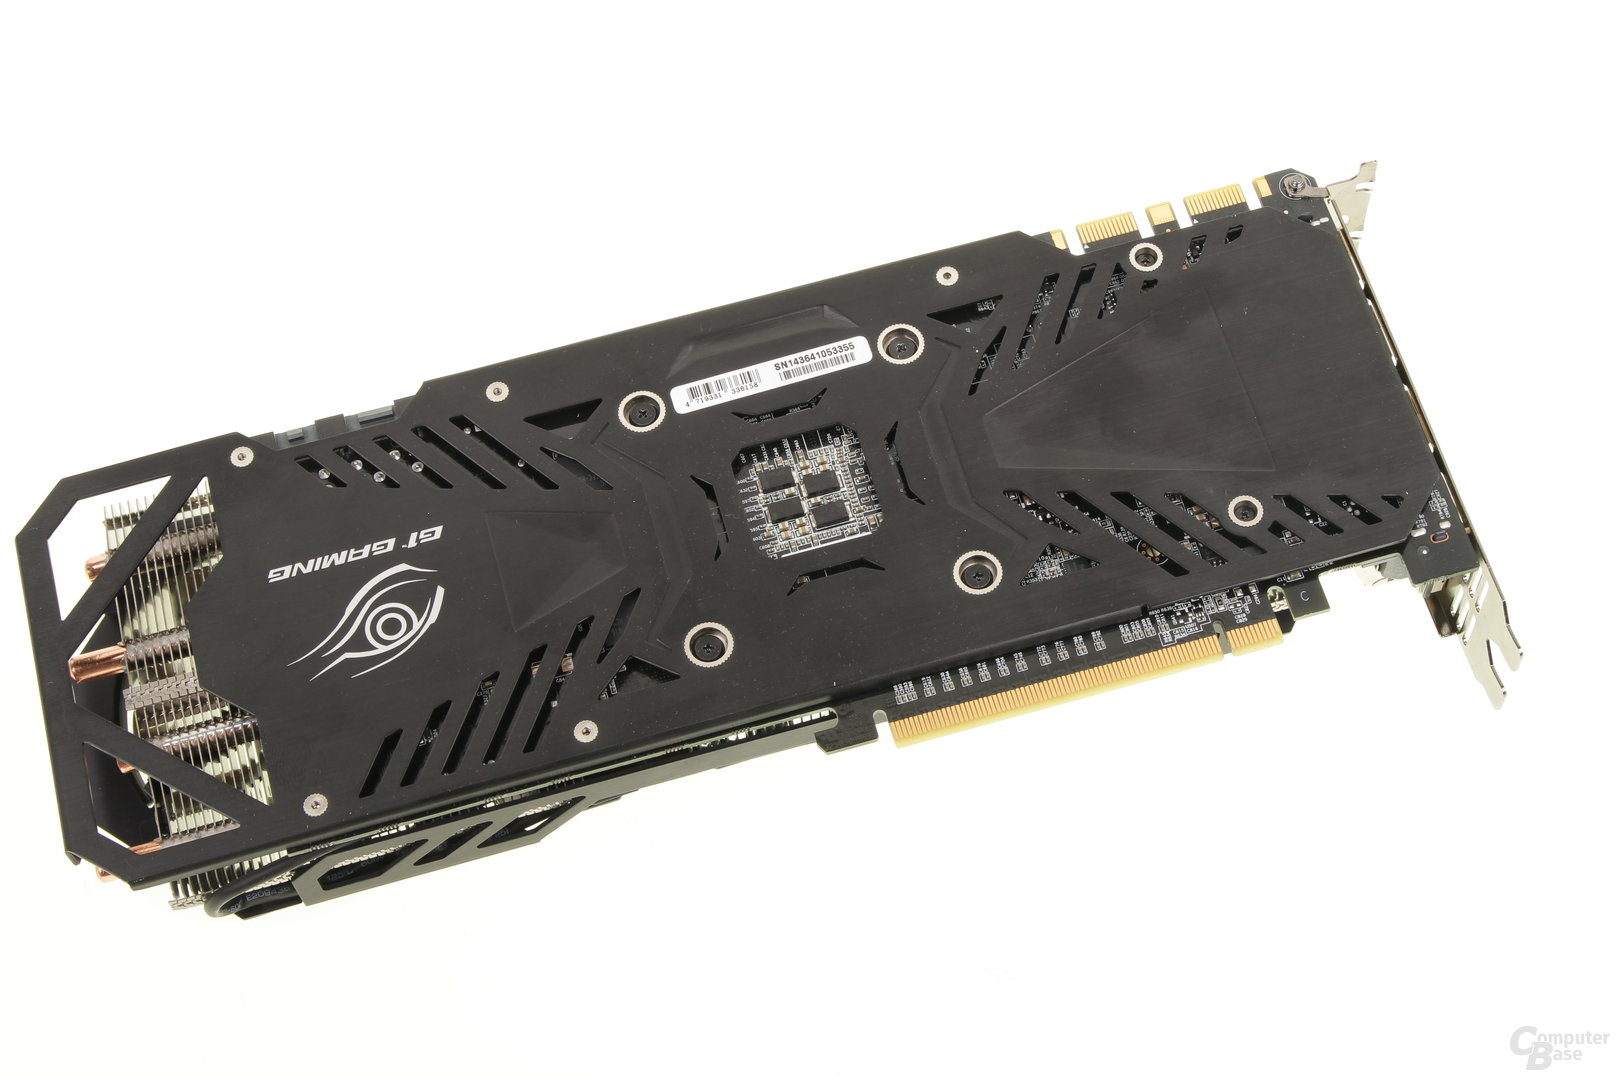 Gigabyte GeForce GTX 970 G1 Gaming – Rückseite